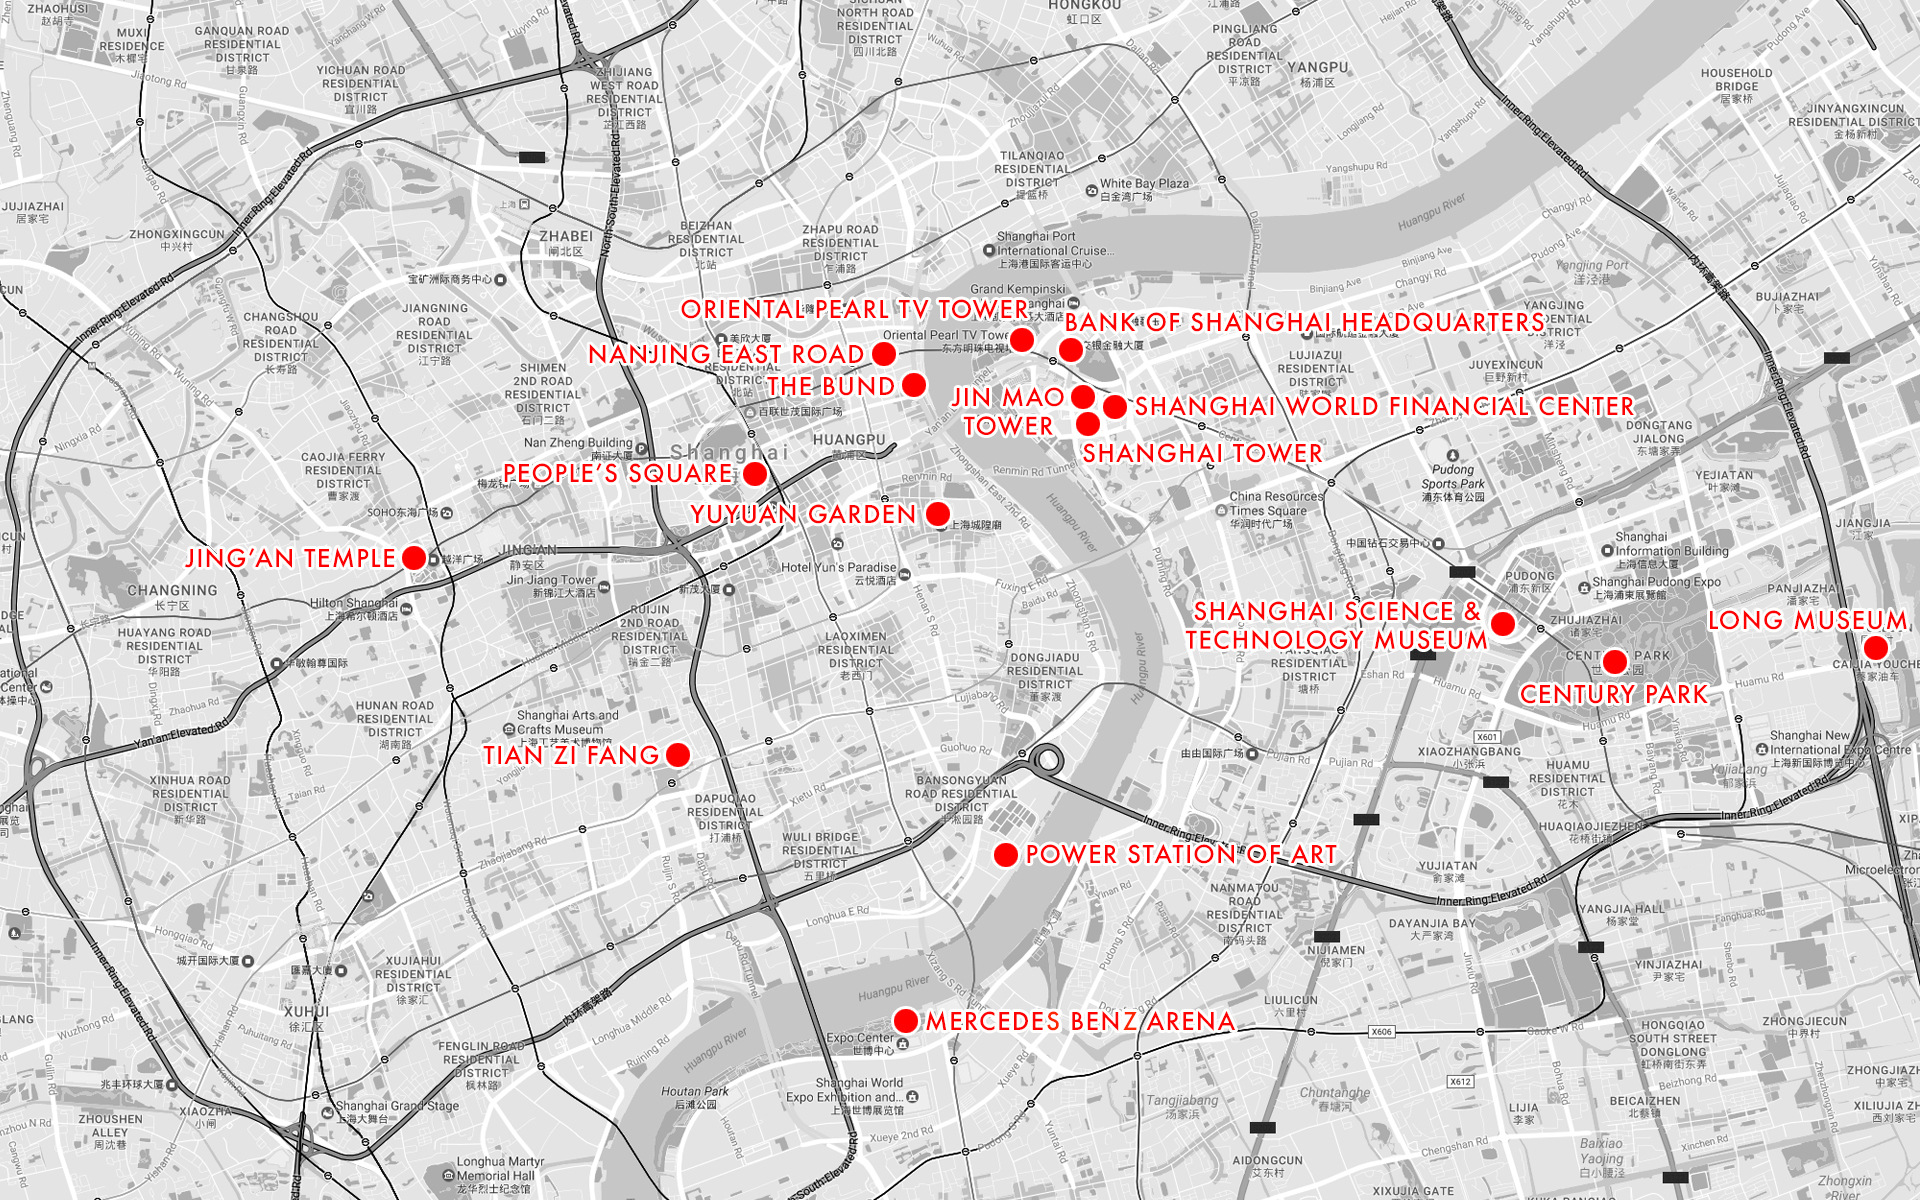 A map of various attractions within the city.  Full disclosure: this is taken from my own chosen points of interest when I was planning my vacation last year.  Some of these are popular tourist spots for anyone, and others are things that piqued my own interest.